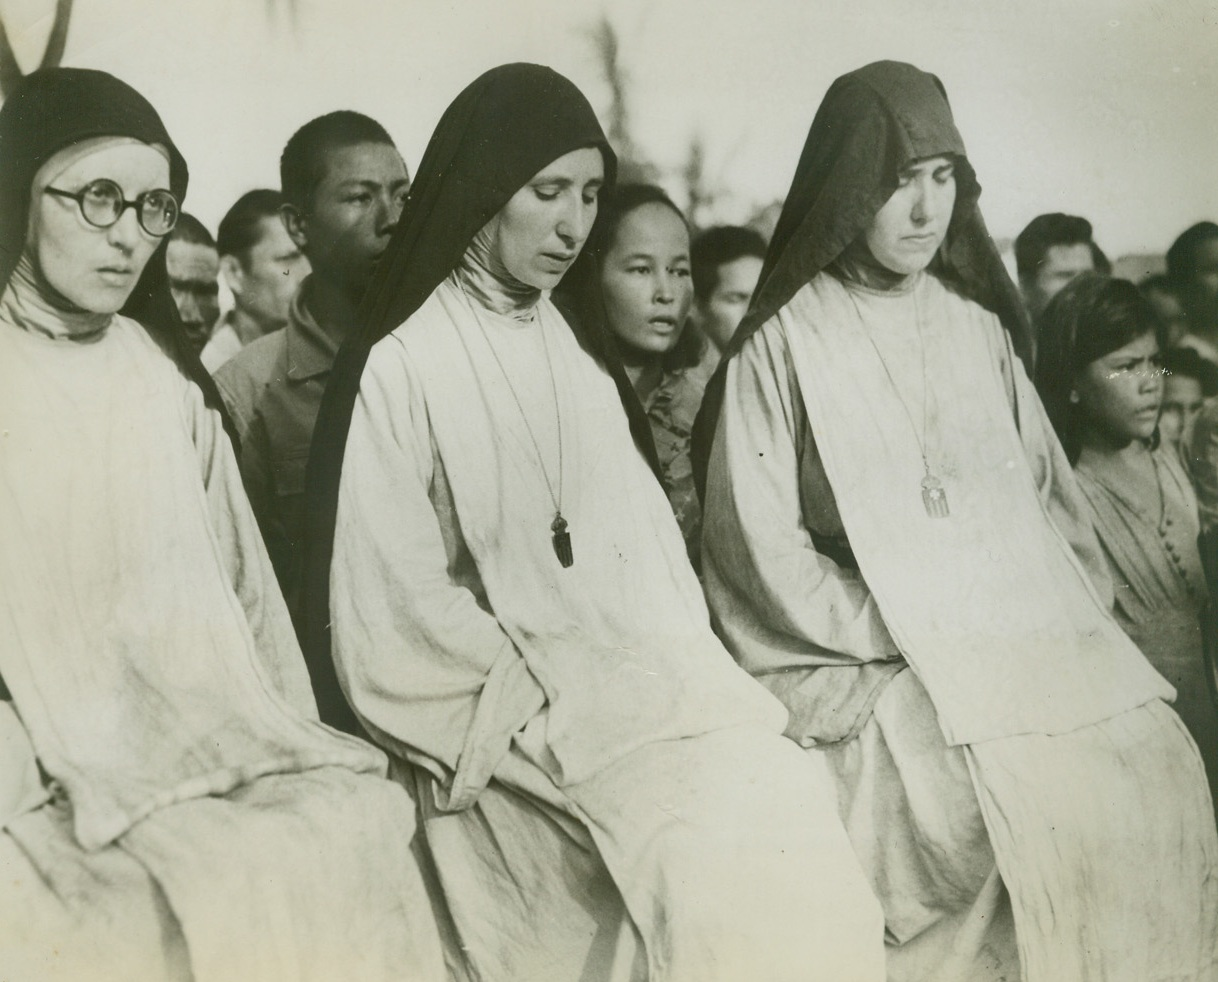 """NUNS ATTEND FIRST MASS ON LIBERATED SAIPAN, 8/1/1944. SAIPAN ISLAND—Catholic nuns attend the first Mass held on Saipan since 1940, when the Japanese abolished Christian rites. Attending Mass with them are other civilians freed from the Japs by the capture of Saipan by the U.S. """"triphibian"""" (air-land-sea) forces.Credit: Official U.S. Navy photo from Acme;"""